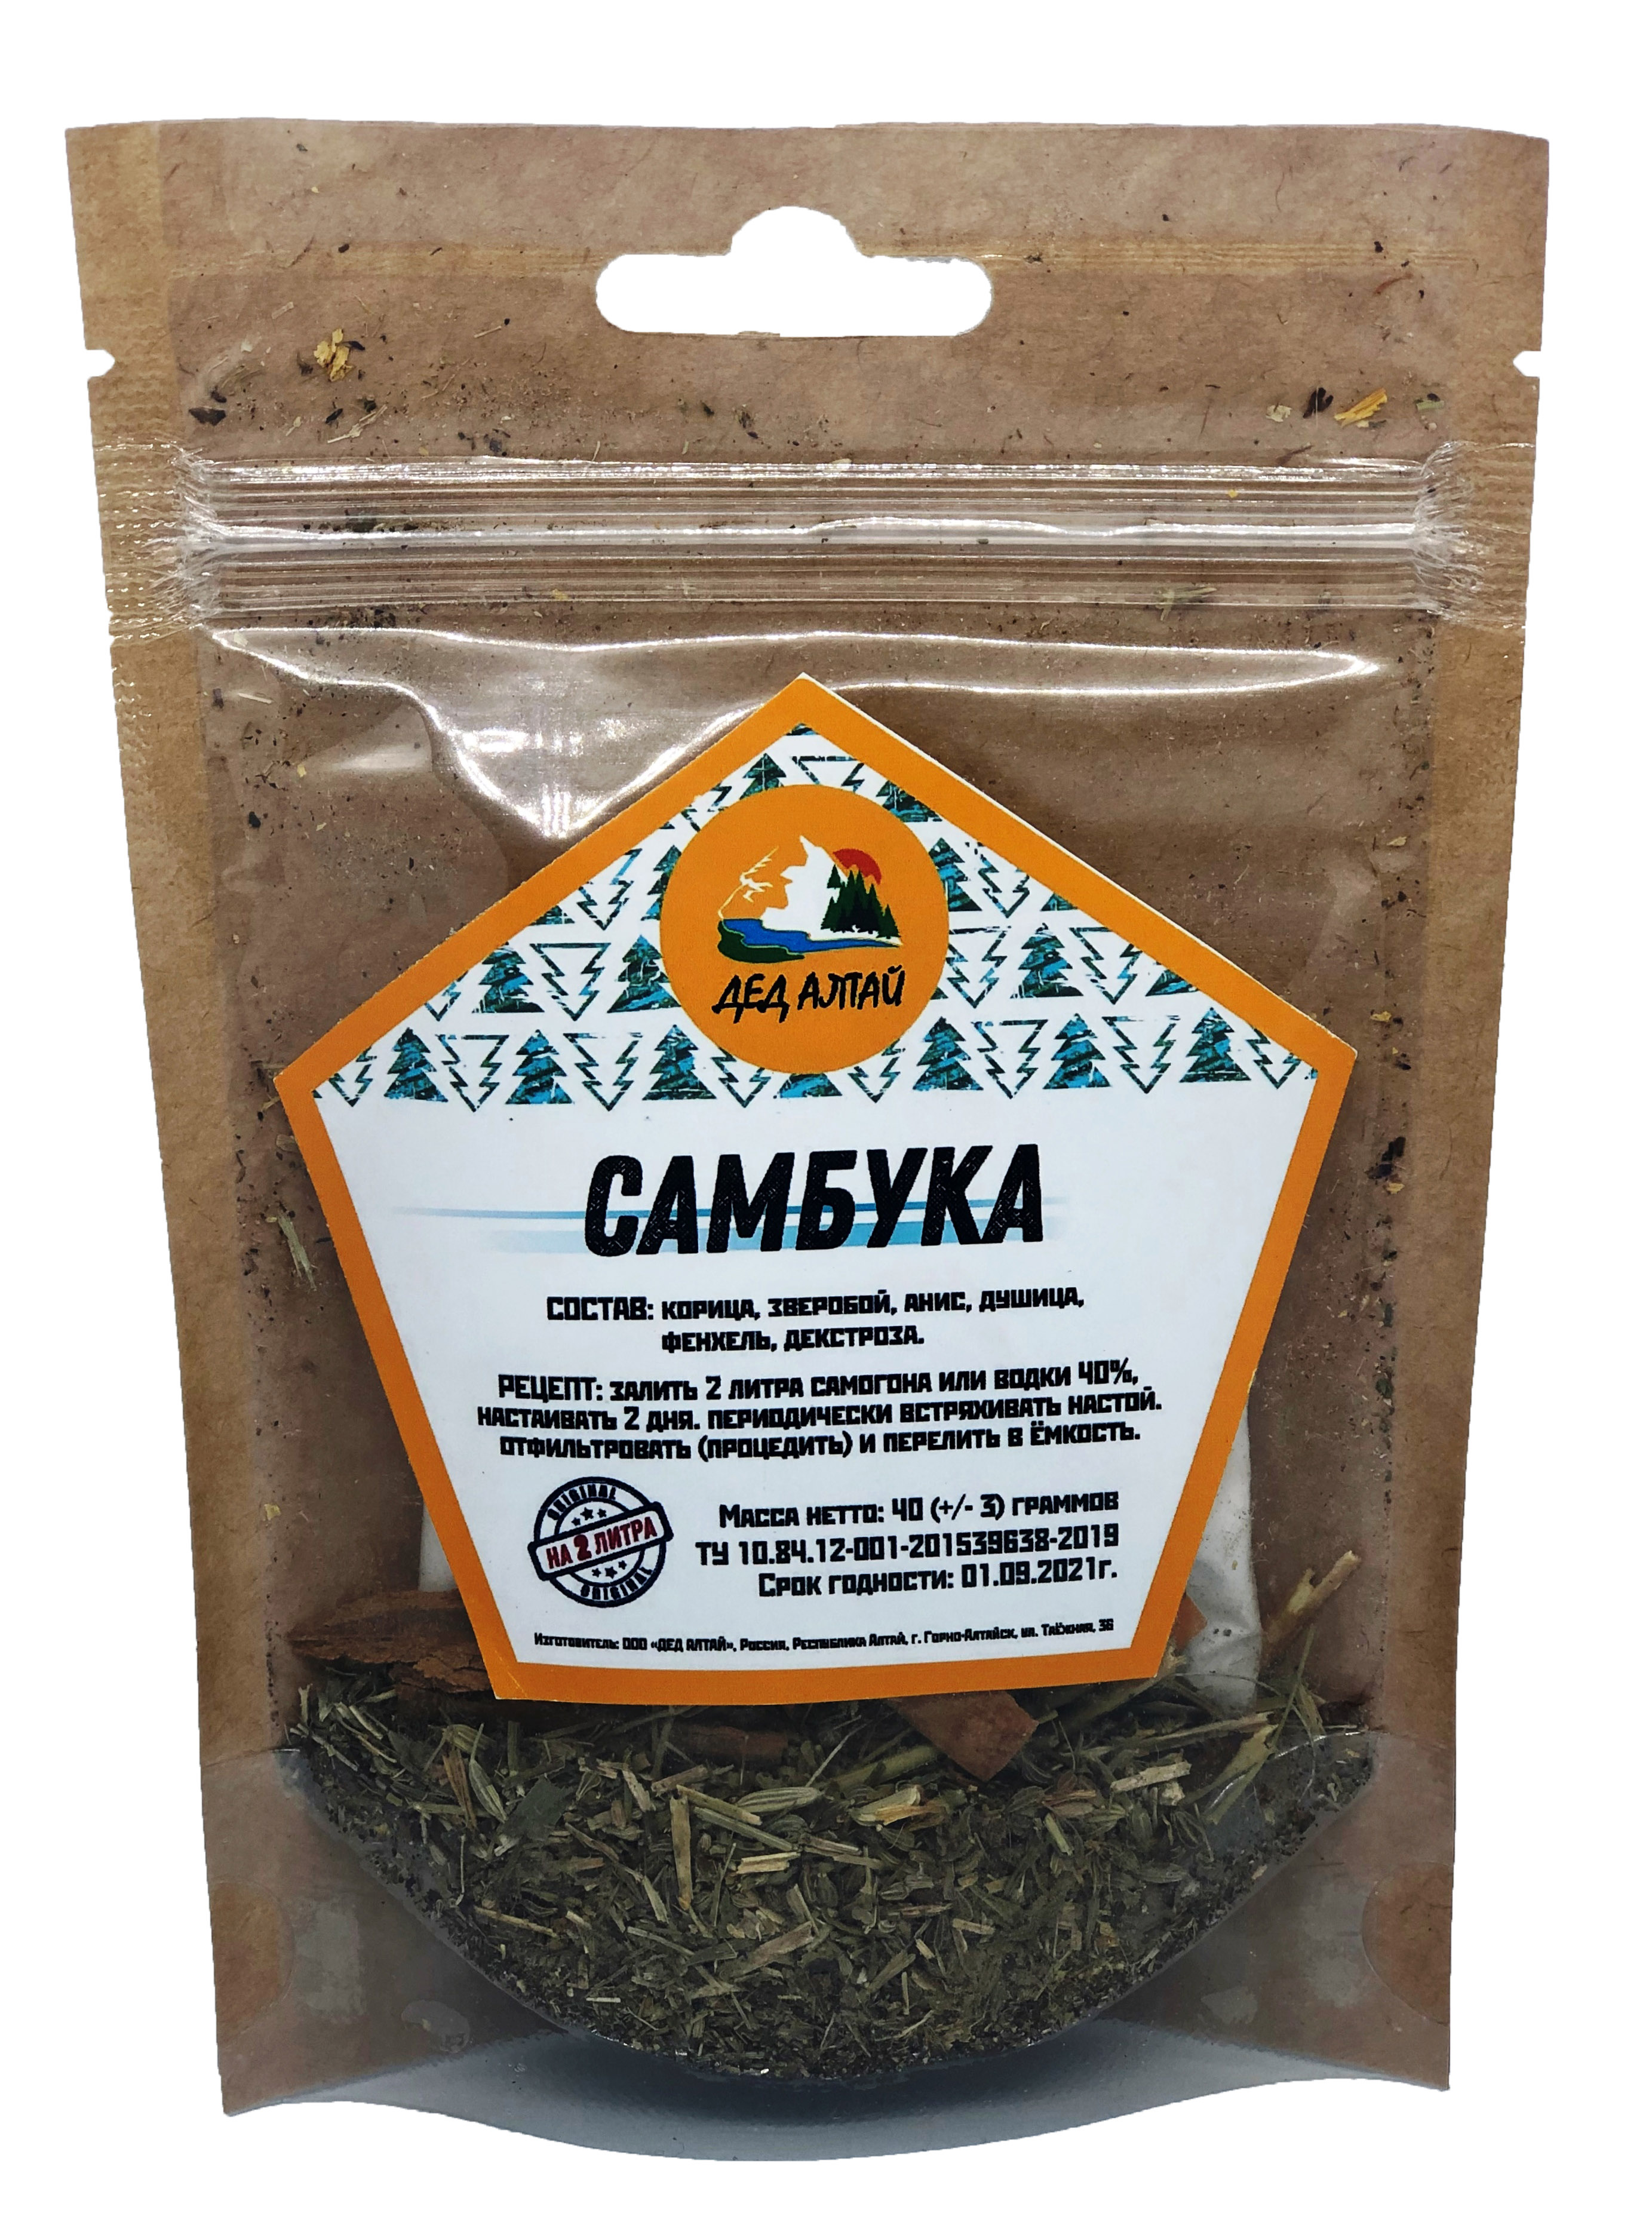 A Set Of Herbs And Spices Santa Алтай Самбука Tincture Brew Distillate Vodka Home Alcohol Improvement